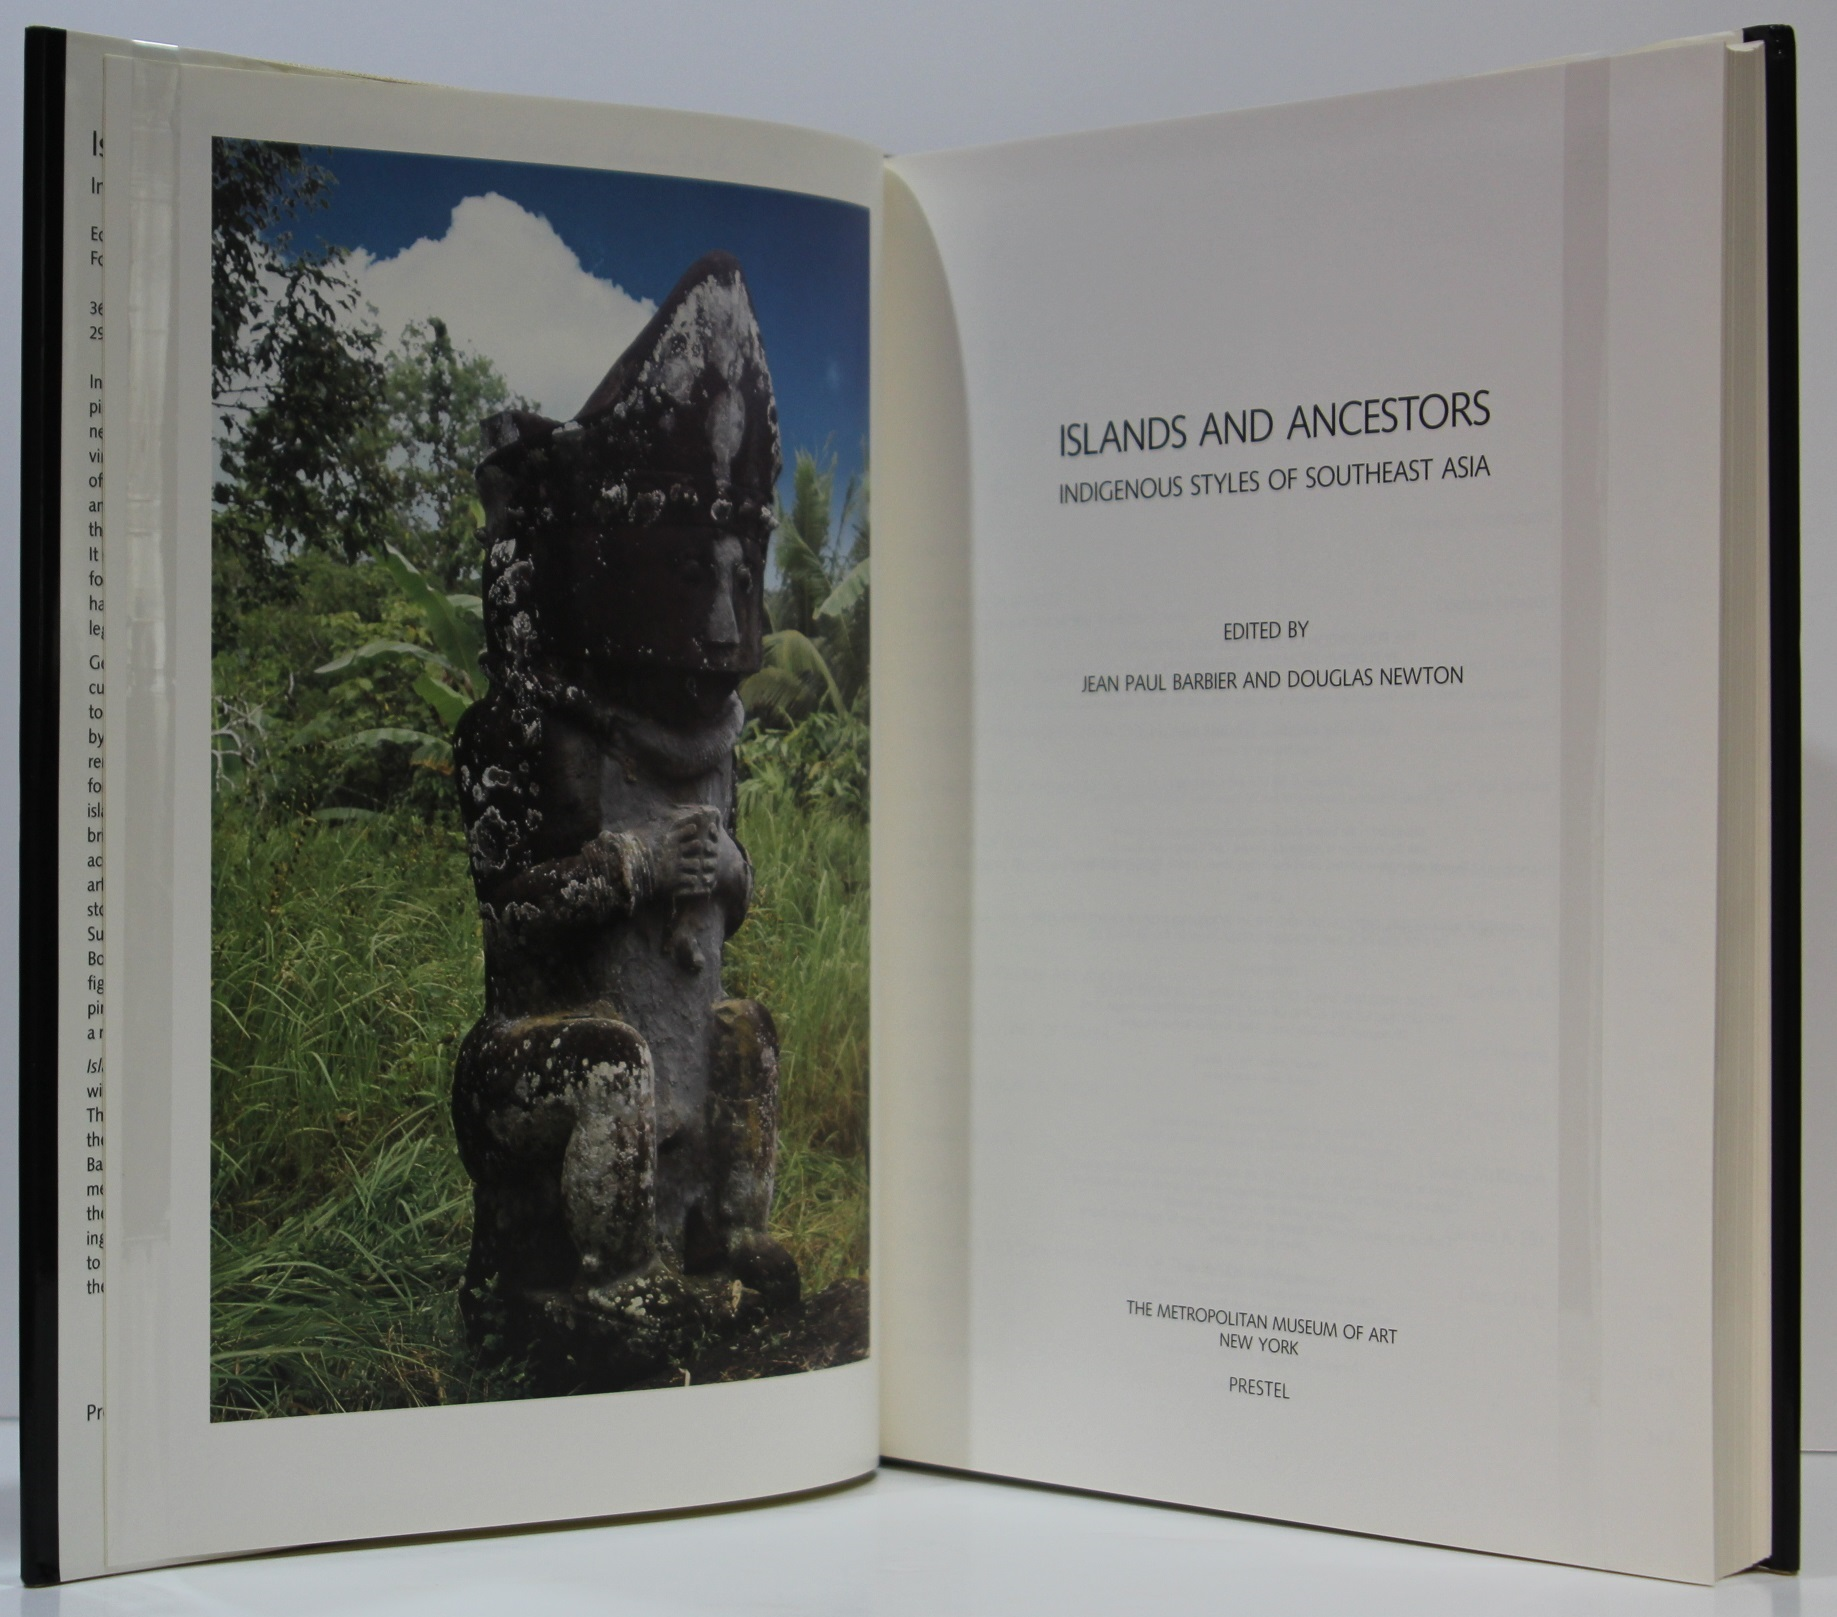 Islands and Ancestors. Indigenous Styles of Southeast Asia. Page titre.